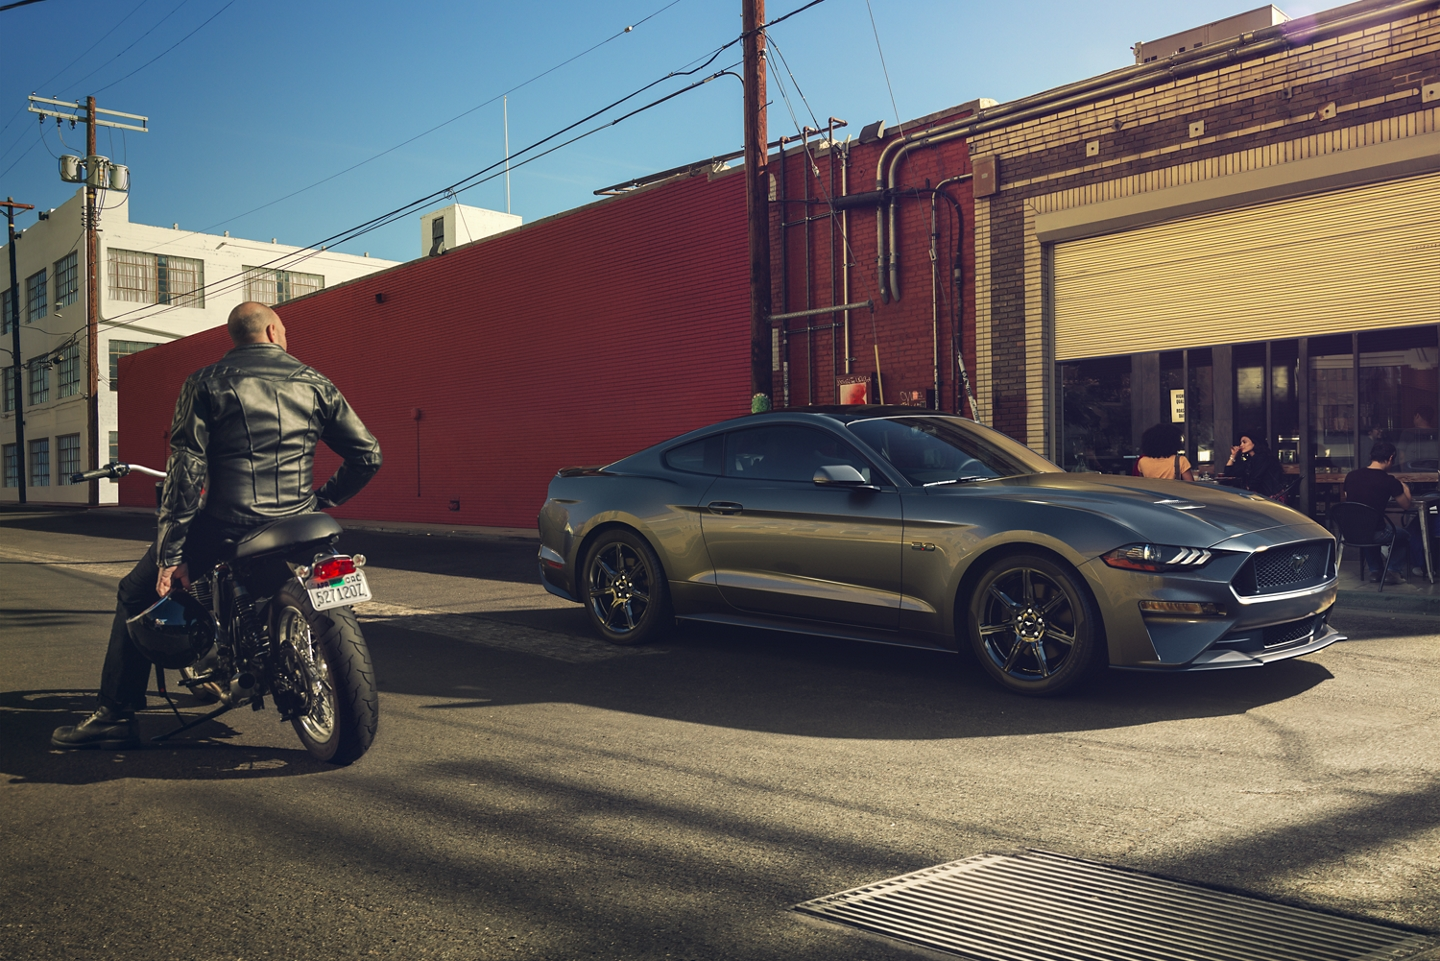 2020 Mustang in Hollywood